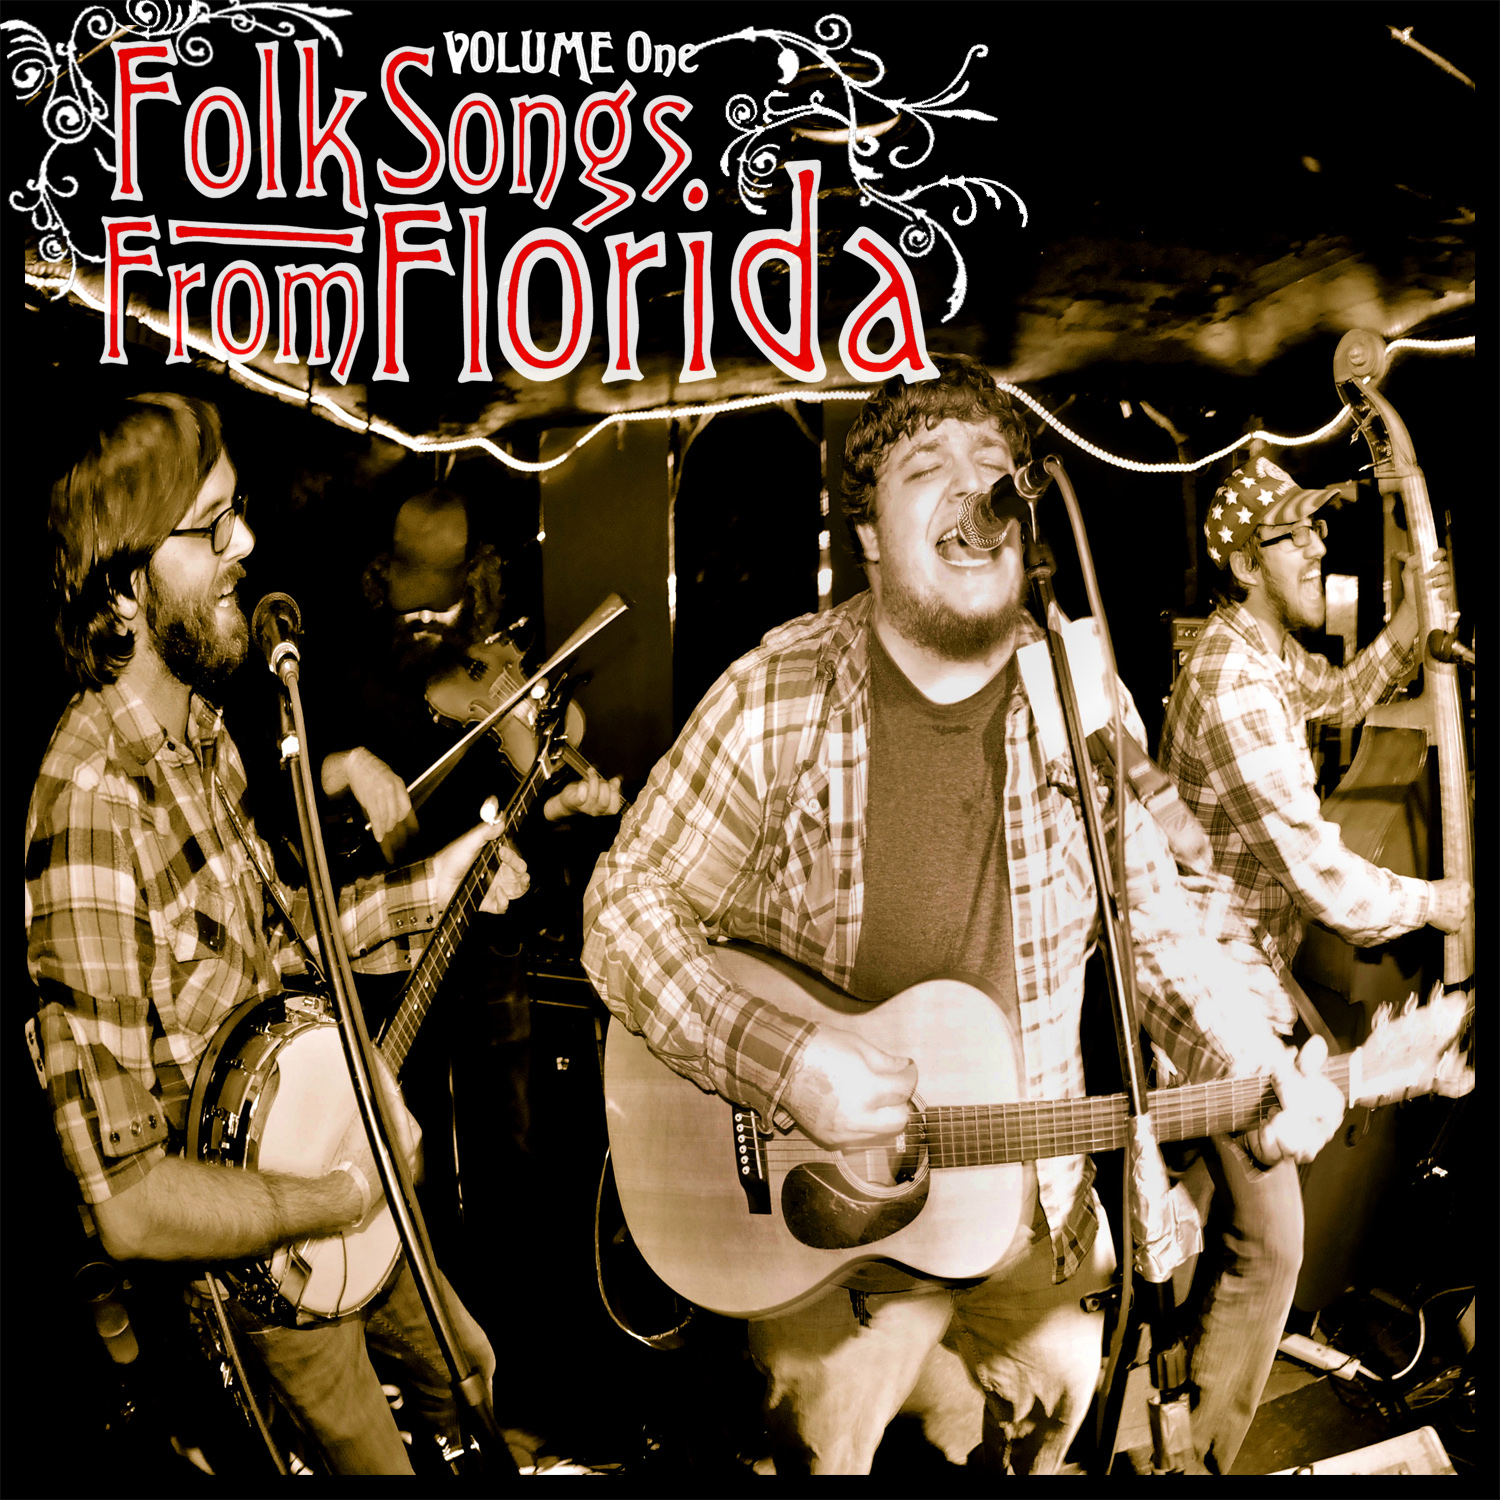 Greenland Is Melting - Folk Songs From Florida: Volume One Digital Only